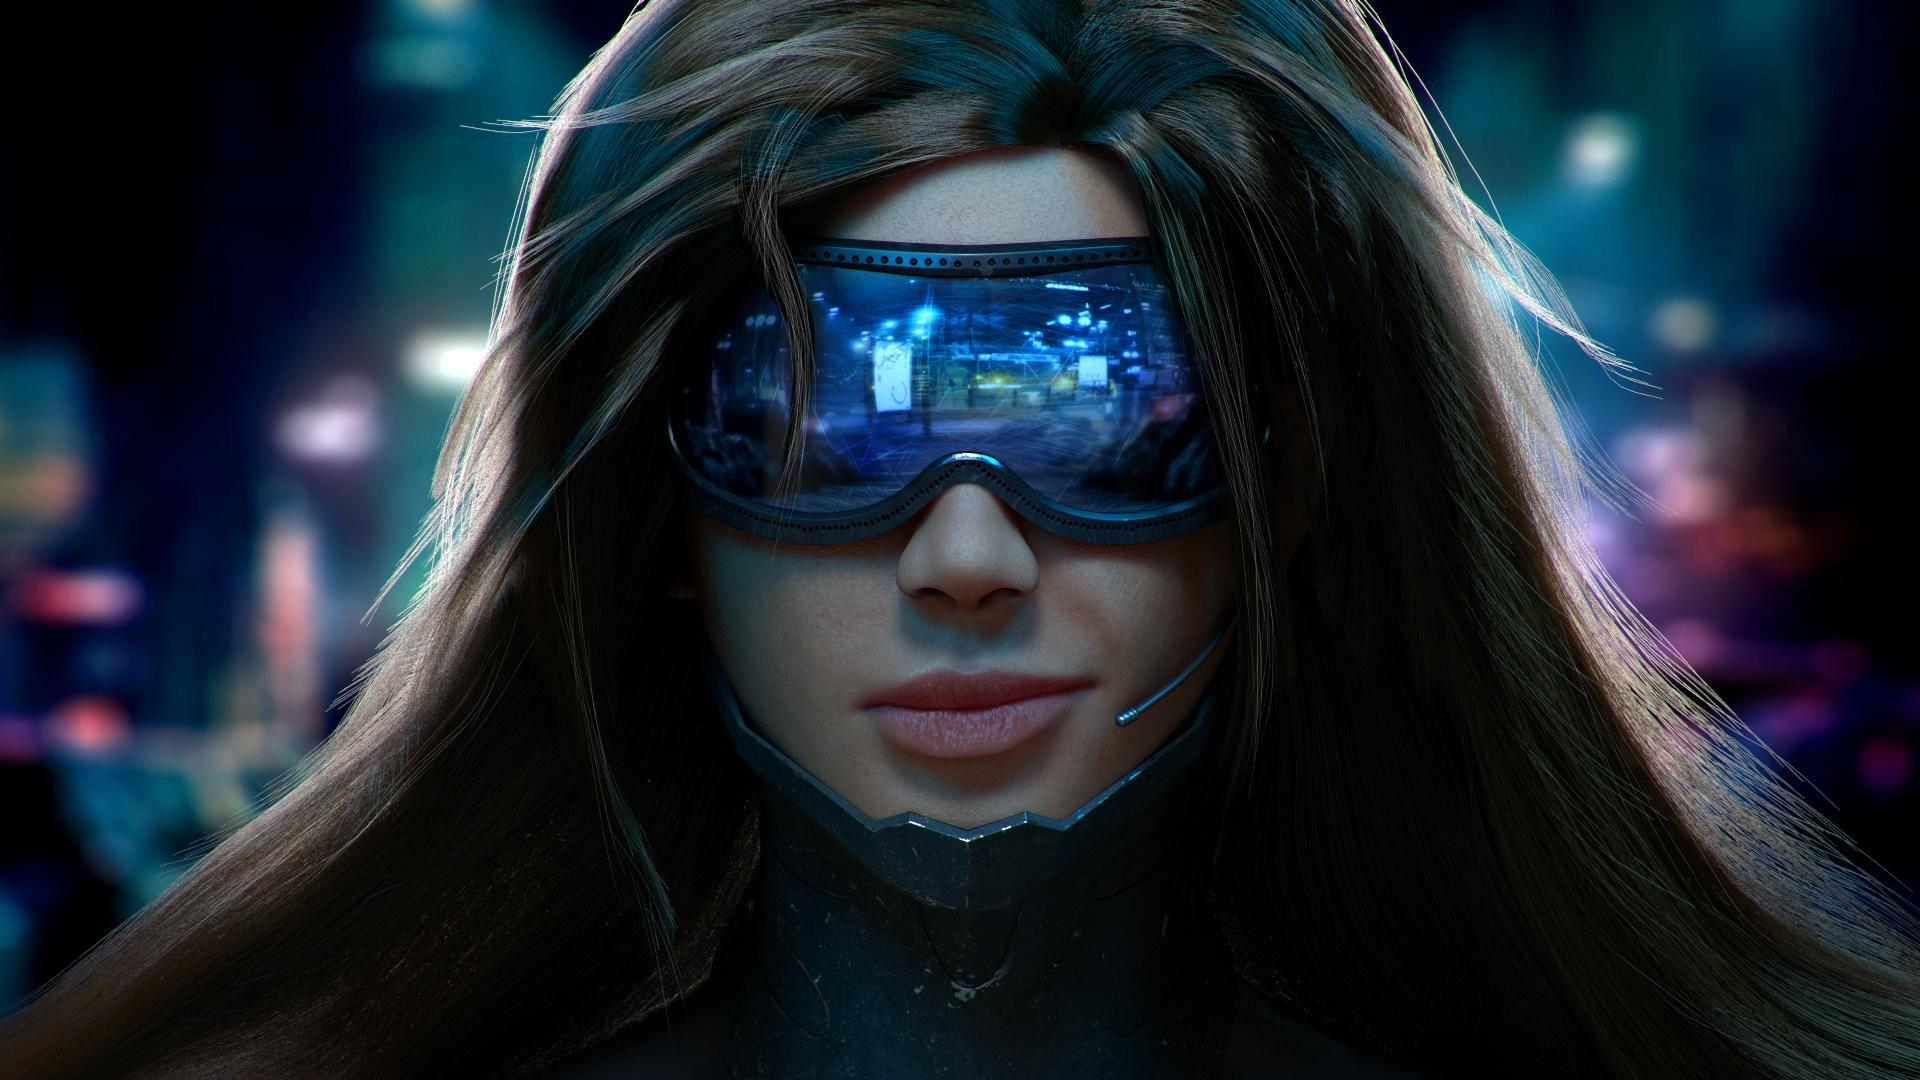 scifi-cyber-girl